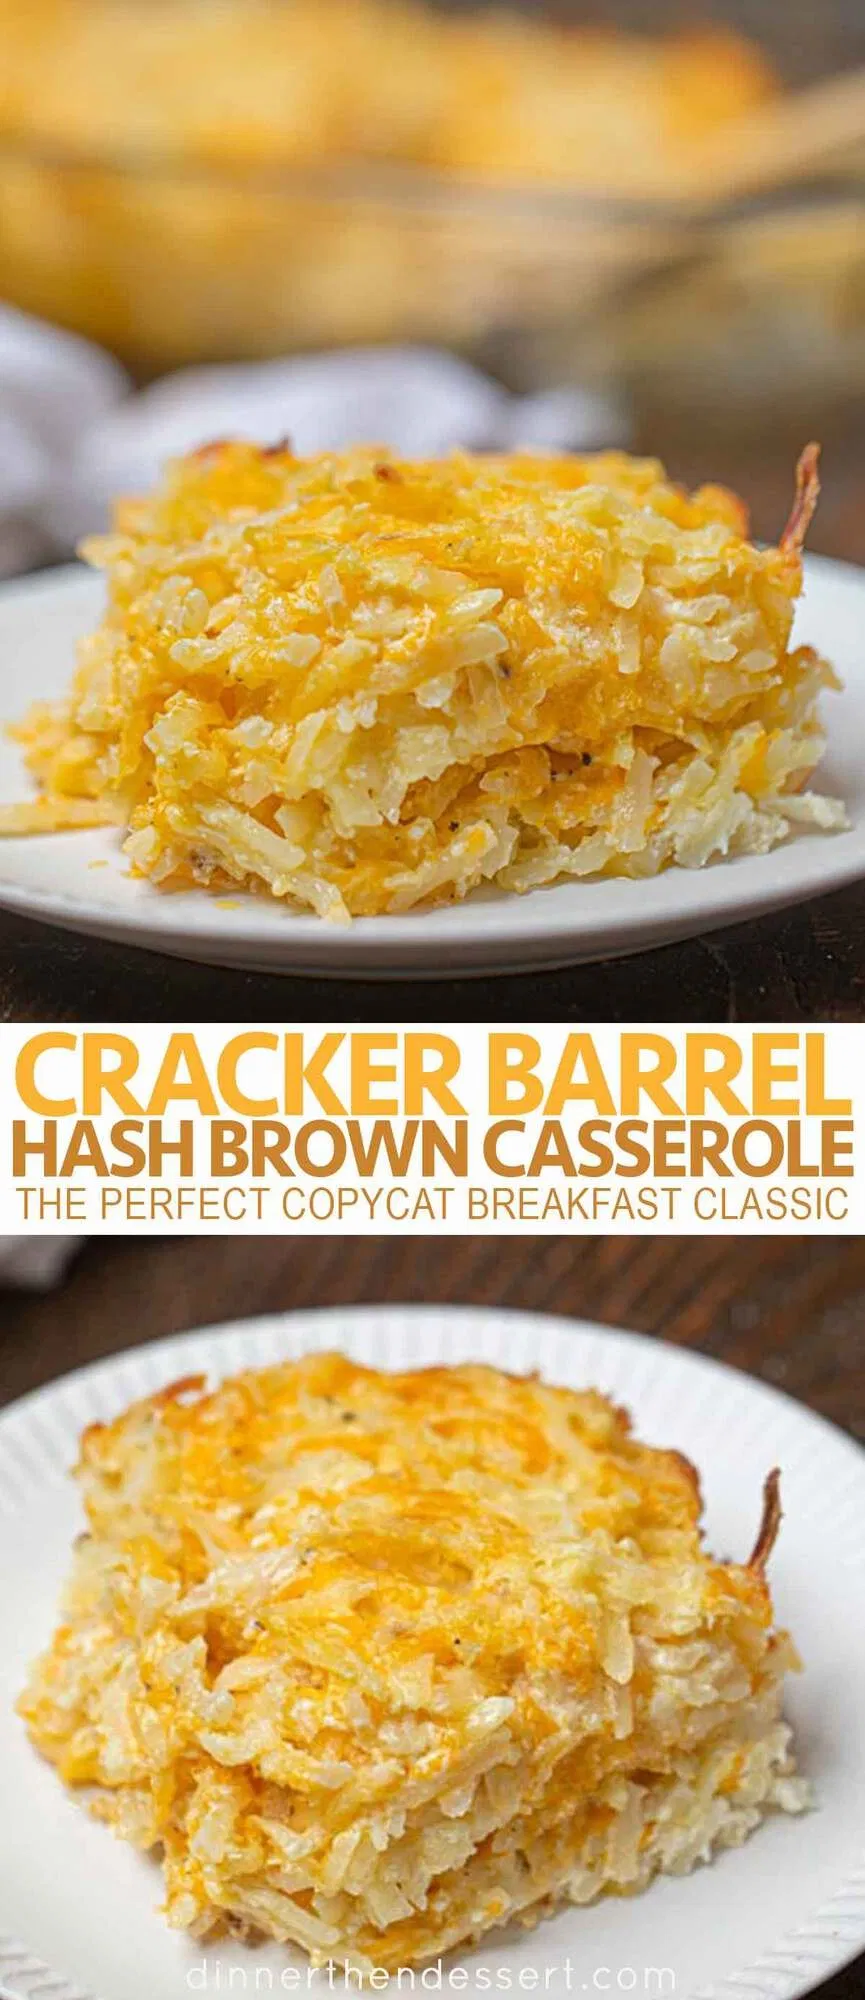 Copy Cat Cracker Barrel Hashbrown Casserole Recipe Blog Dsign Club In 2020 Hashbrown Recipes Hashbrown Casserole Recipe Recipes